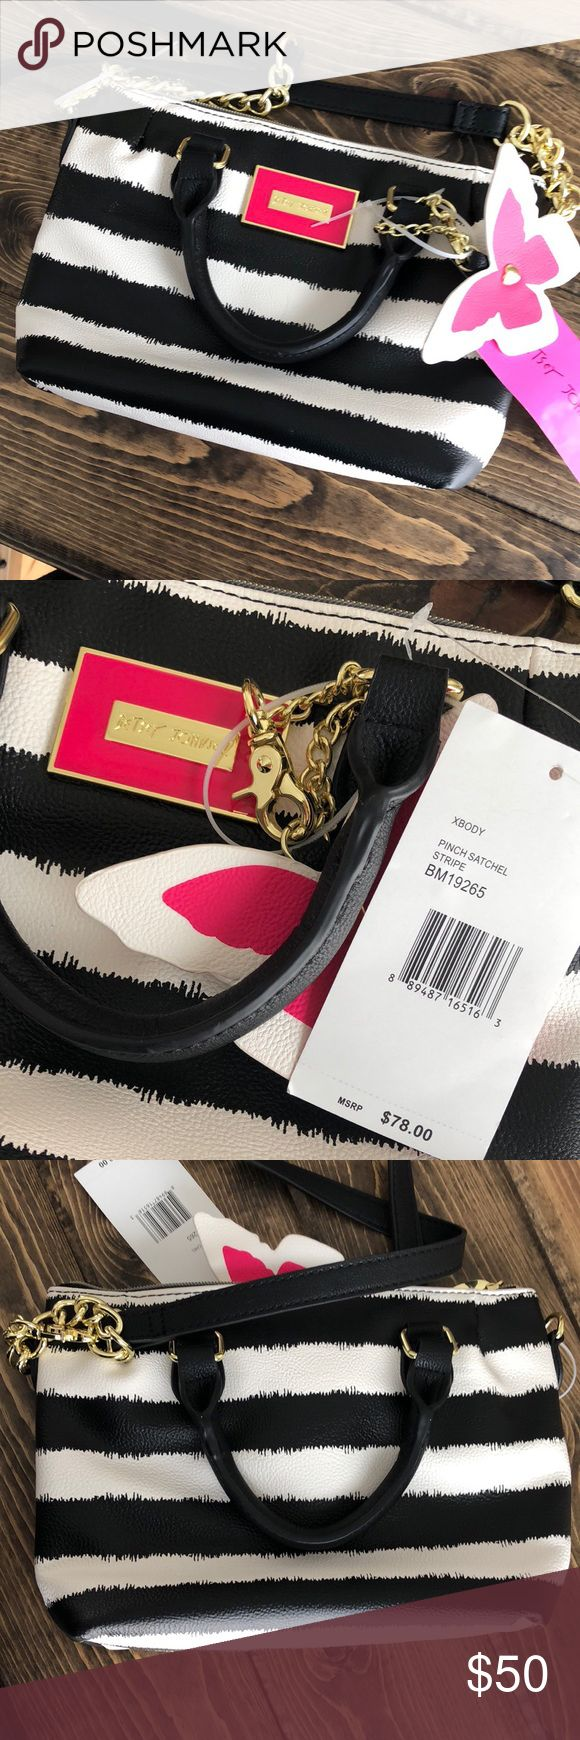 NWT*Betsey Johnson crossbody purse *NWT* Cute crossbody purse by Betsey Johnson. Black and white stripes with gold chains. The inside is floral (pictured). The butterfly is detachable. The crossbody strap is also detachable and there are hand straps.  Send me a reasonable offer! Betsey Johnson Bags Crossbody Bags